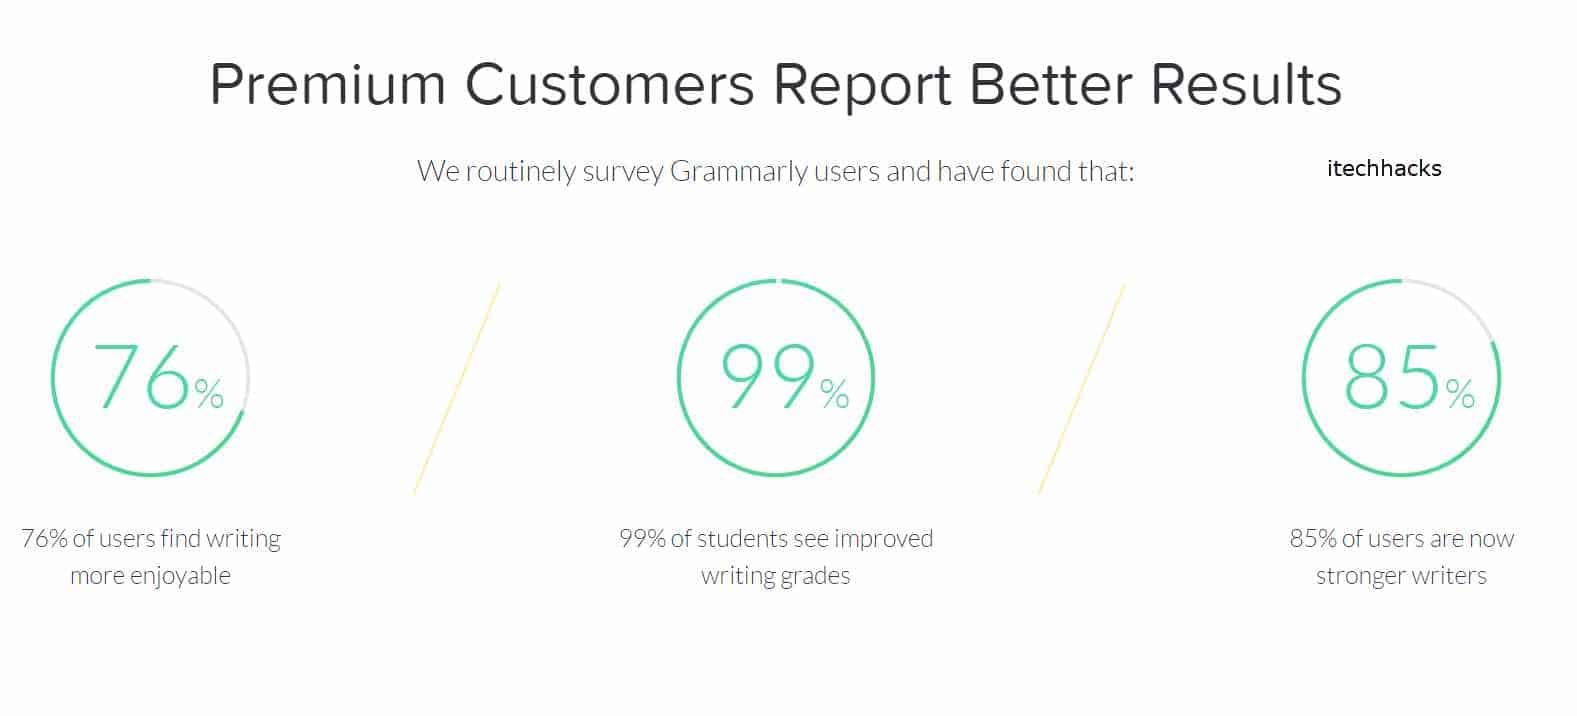 How To Get Grammarly Premium Accounts For Free